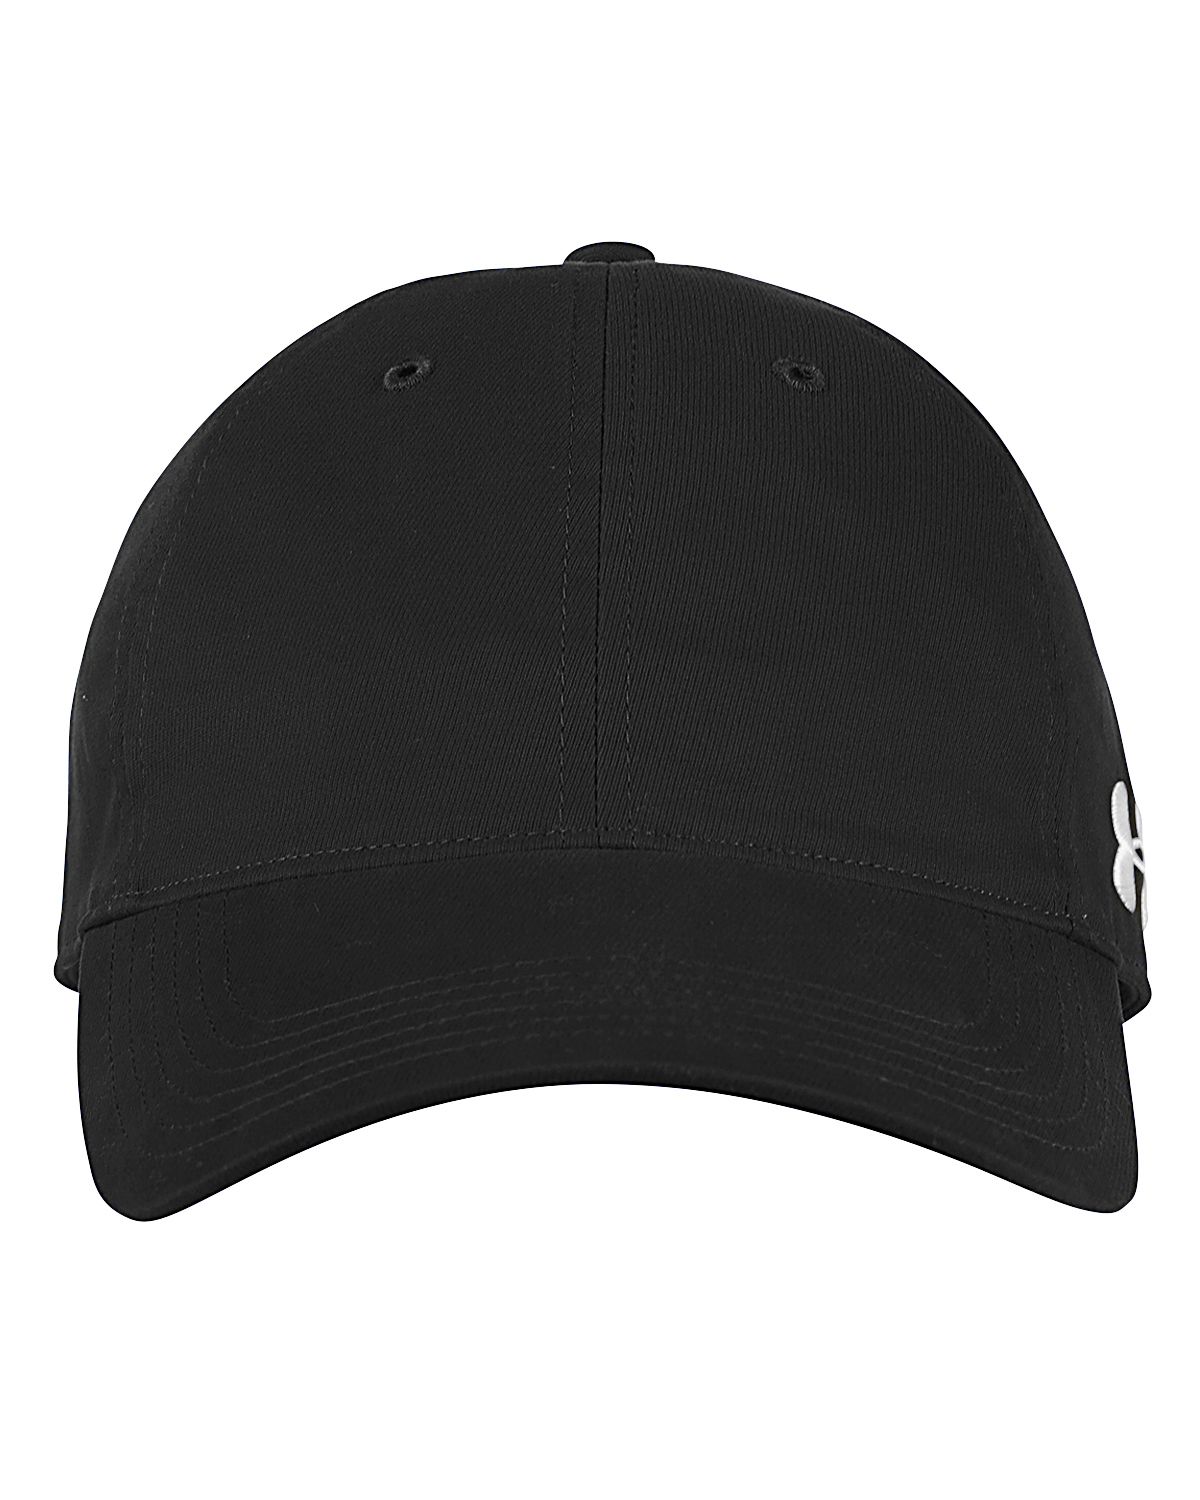 Under Armour 1282140 - Adjustable Chino Cap